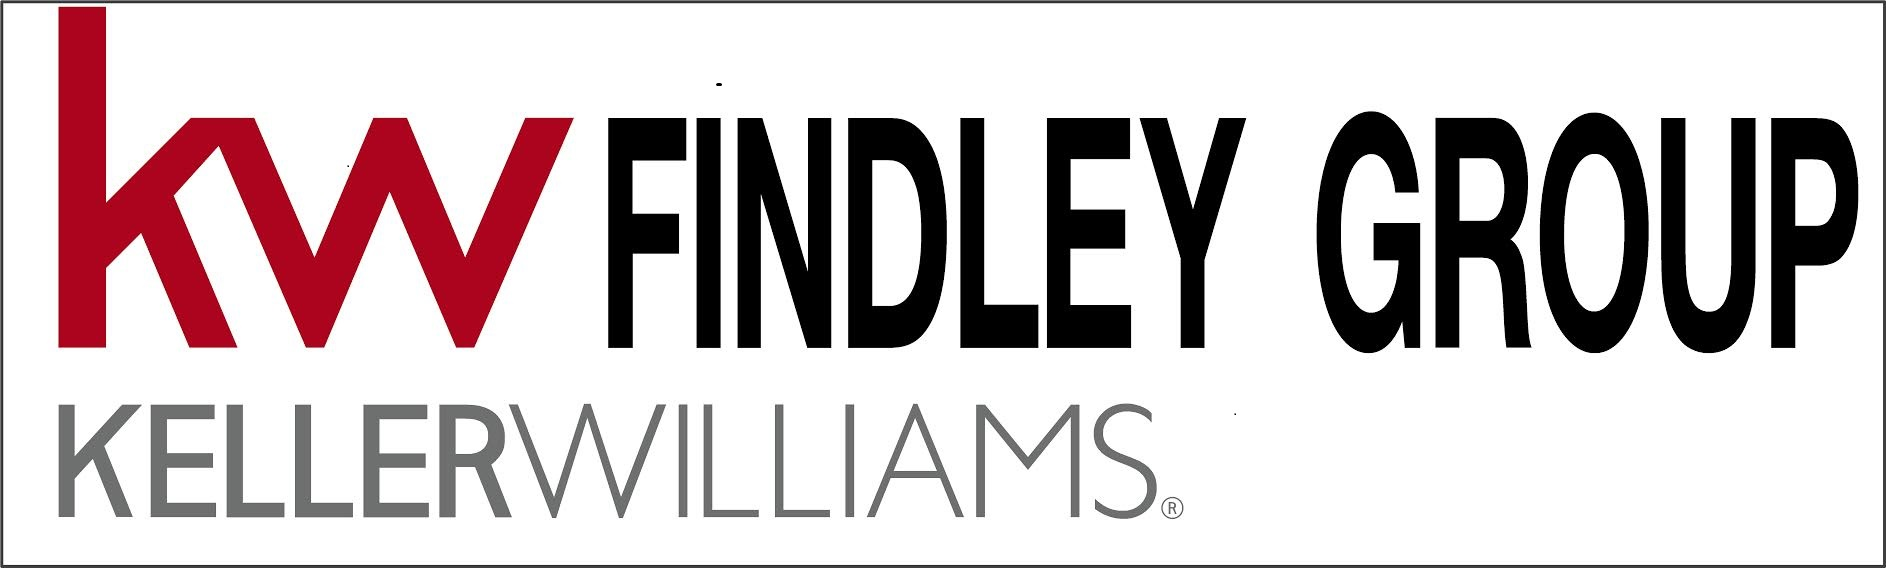 Findley group logo 2